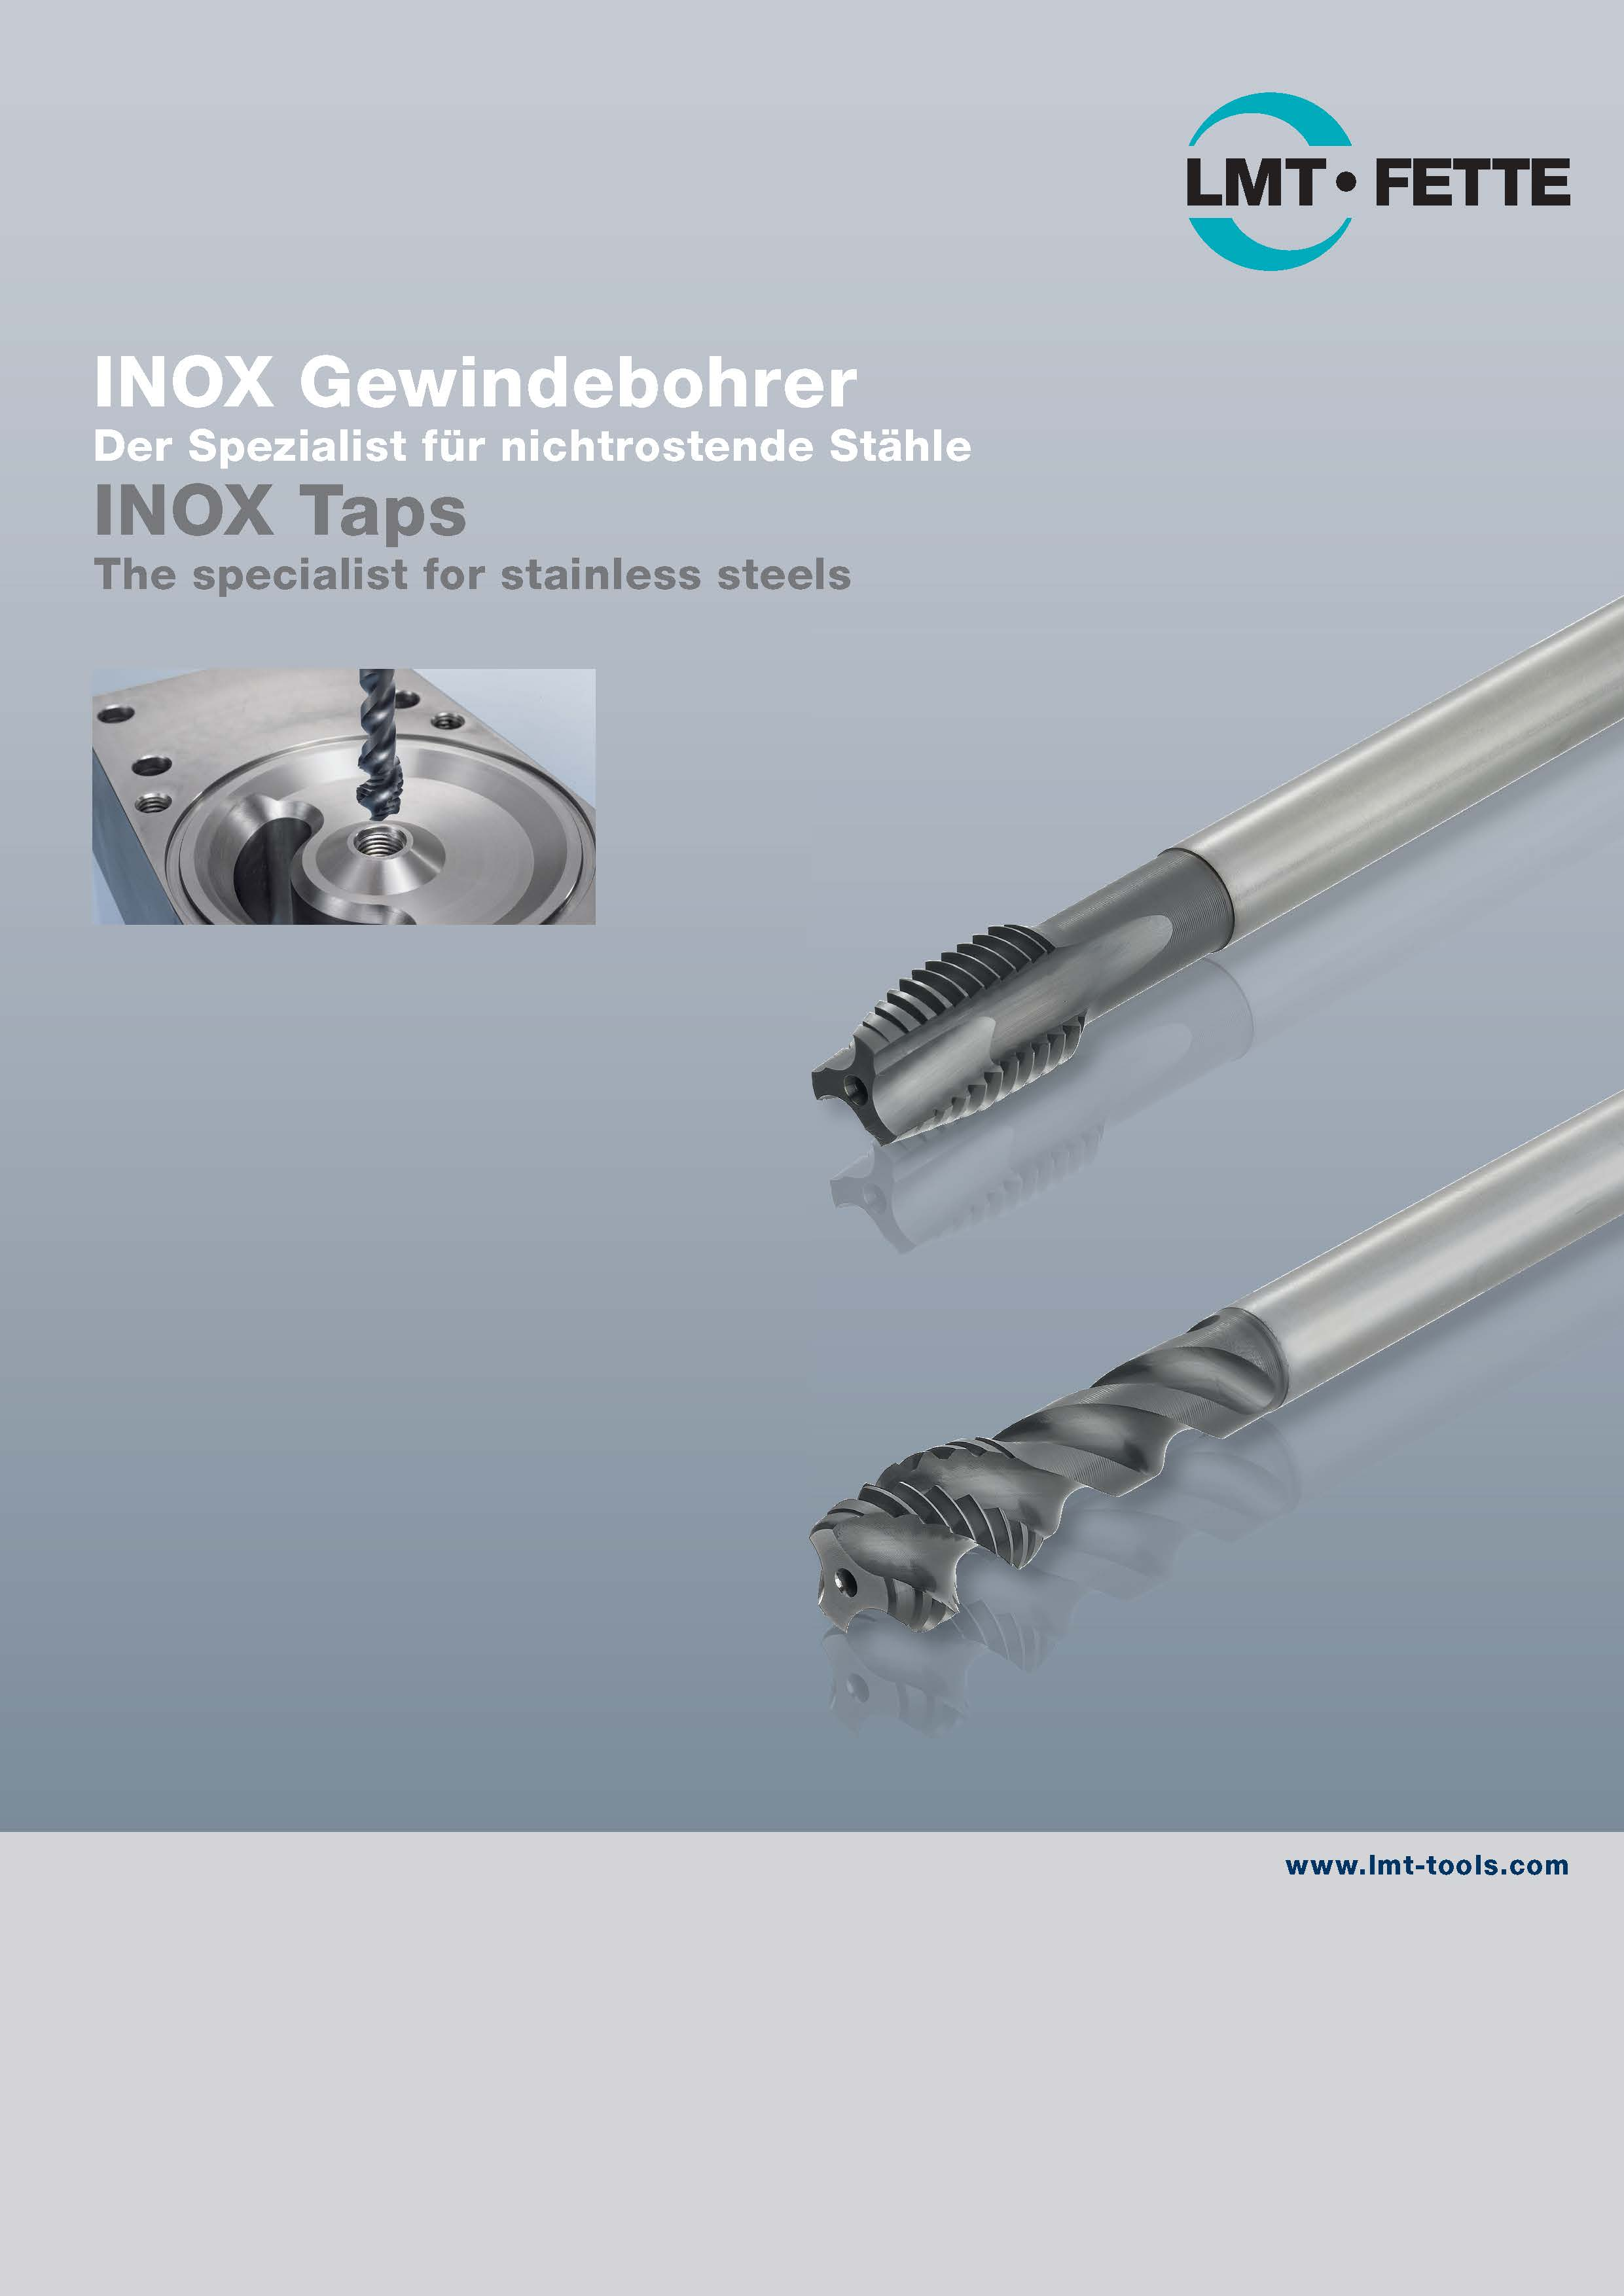 INOX Taps - The specialist for stainless steels